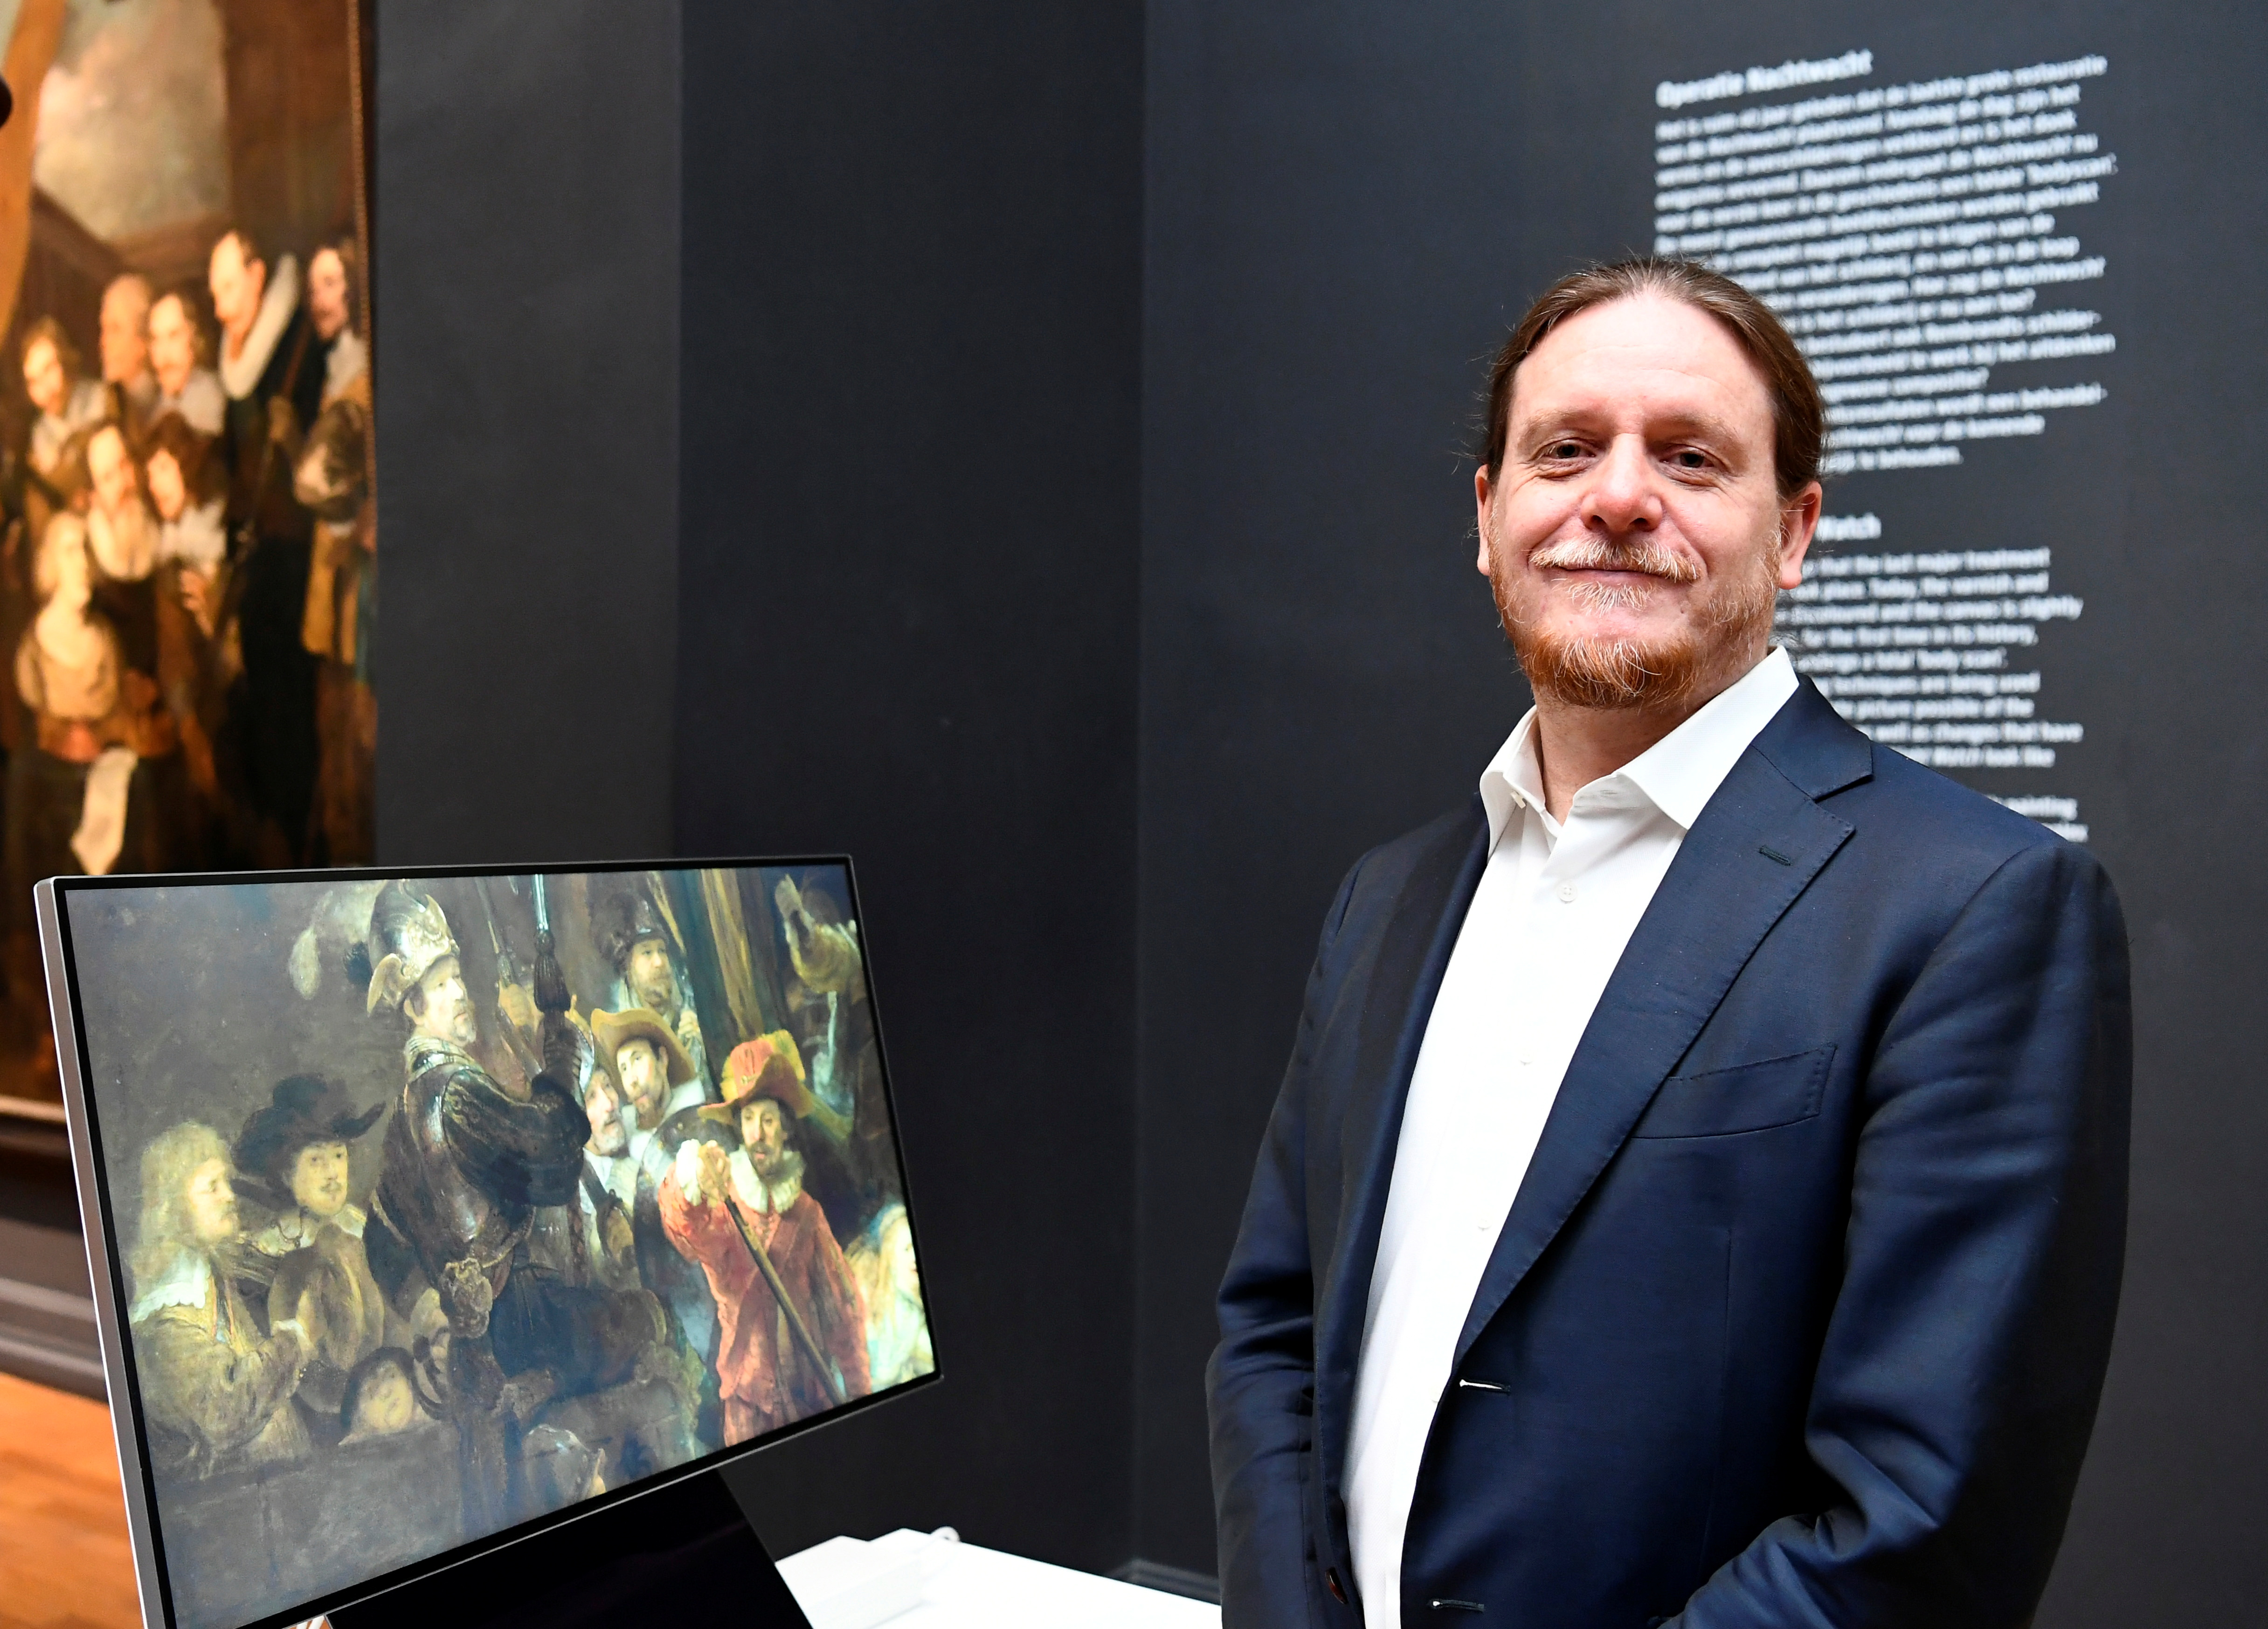 Robert Erdmann, senior scientist at the Rijksmuseum, shows Rembrandt's famed Night Watch on a screen, while the painting is back on display in what researchers say in its original size, with missing parts temporarily restored in an exhibition aided by artificial intelligence at Rijksmuseum in Amsterdam, Netherlands June 23, 2021. REUTERS/Piroschka van de Wouw